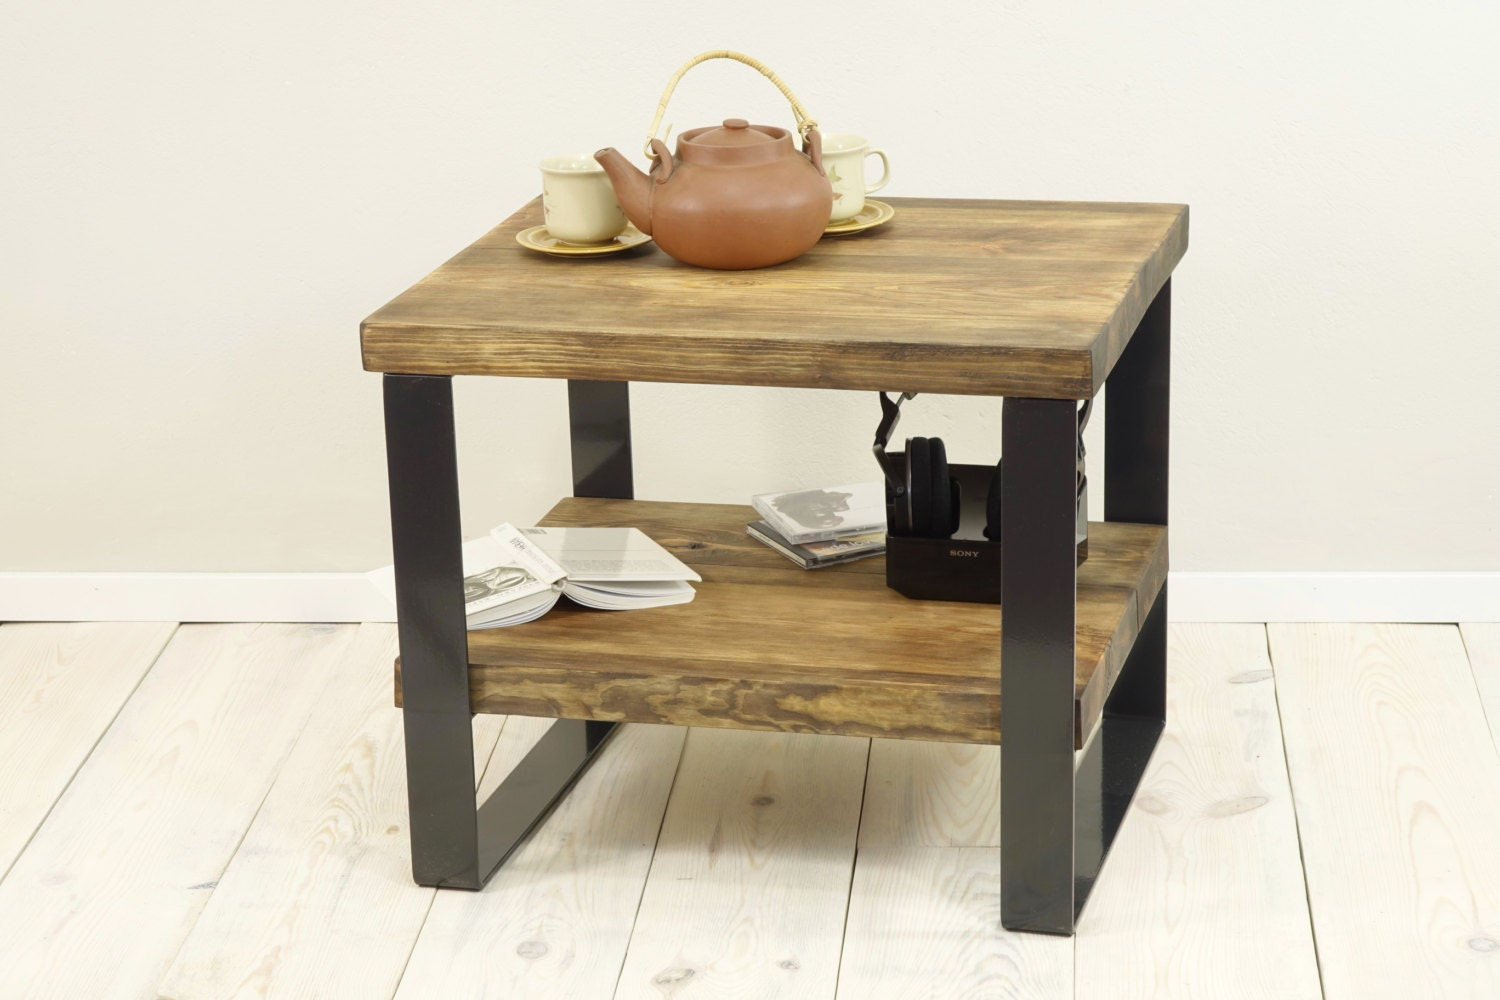 Reclaimed Wood Table ~ Reclaimed wood side table level coffee plank